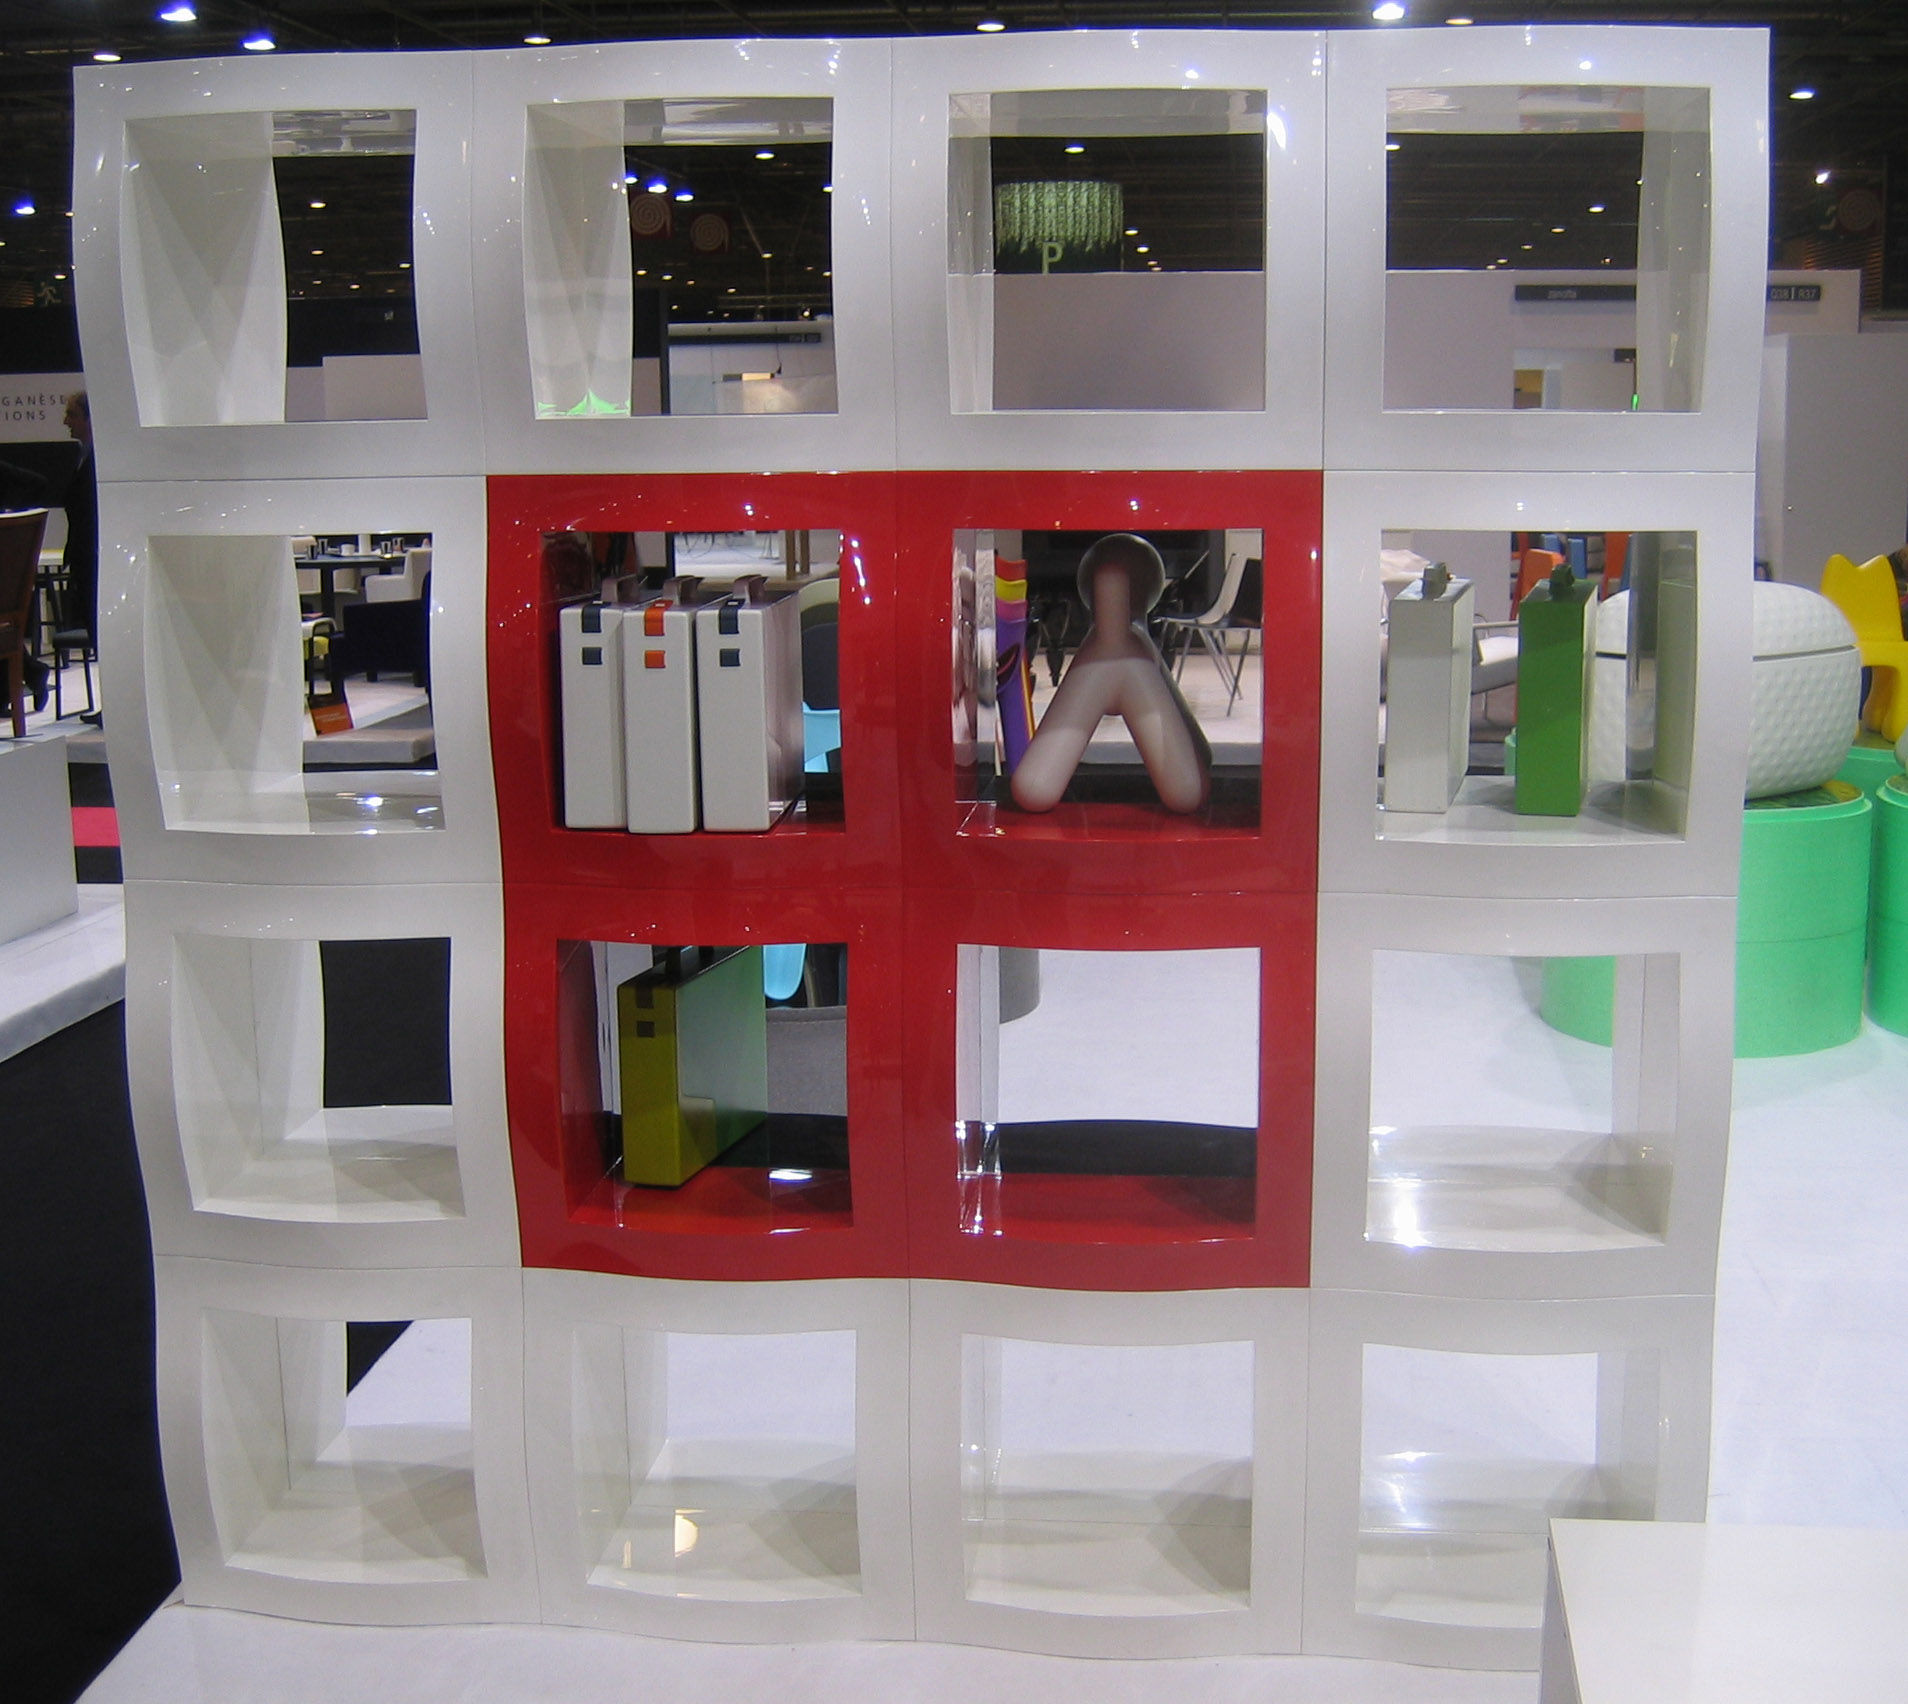 etag re boogie woogie cube modulaire 52 x 52 cm rouge sans fond magis. Black Bedroom Furniture Sets. Home Design Ideas